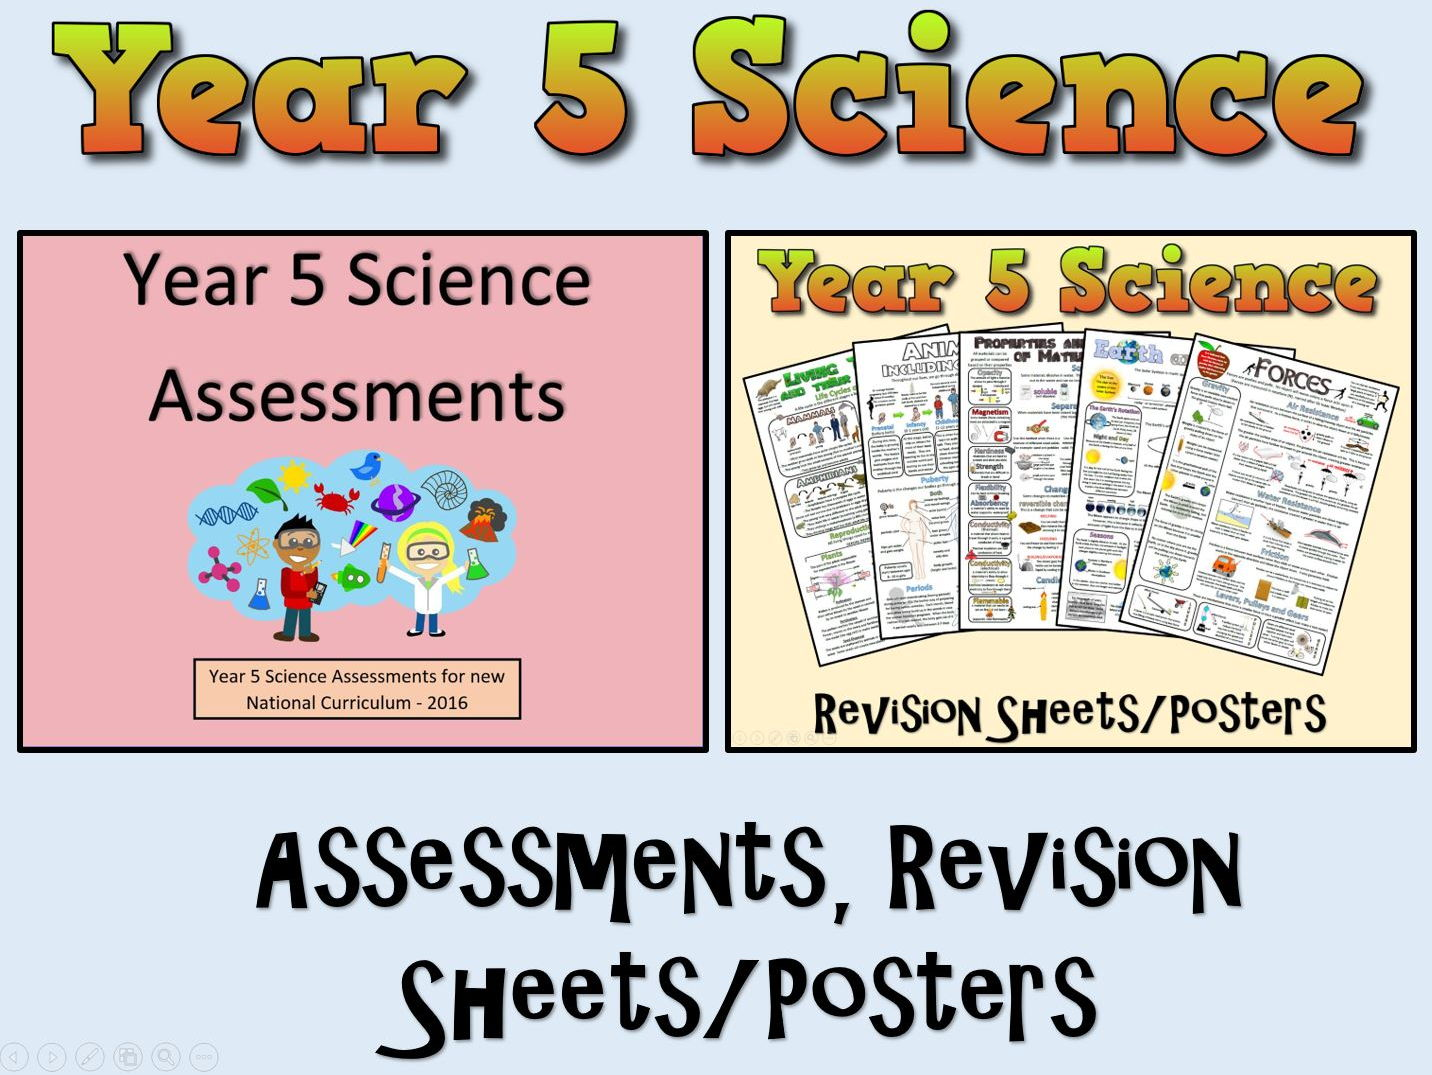 Year 5 Science Assessments + Posters/Revision Sheets